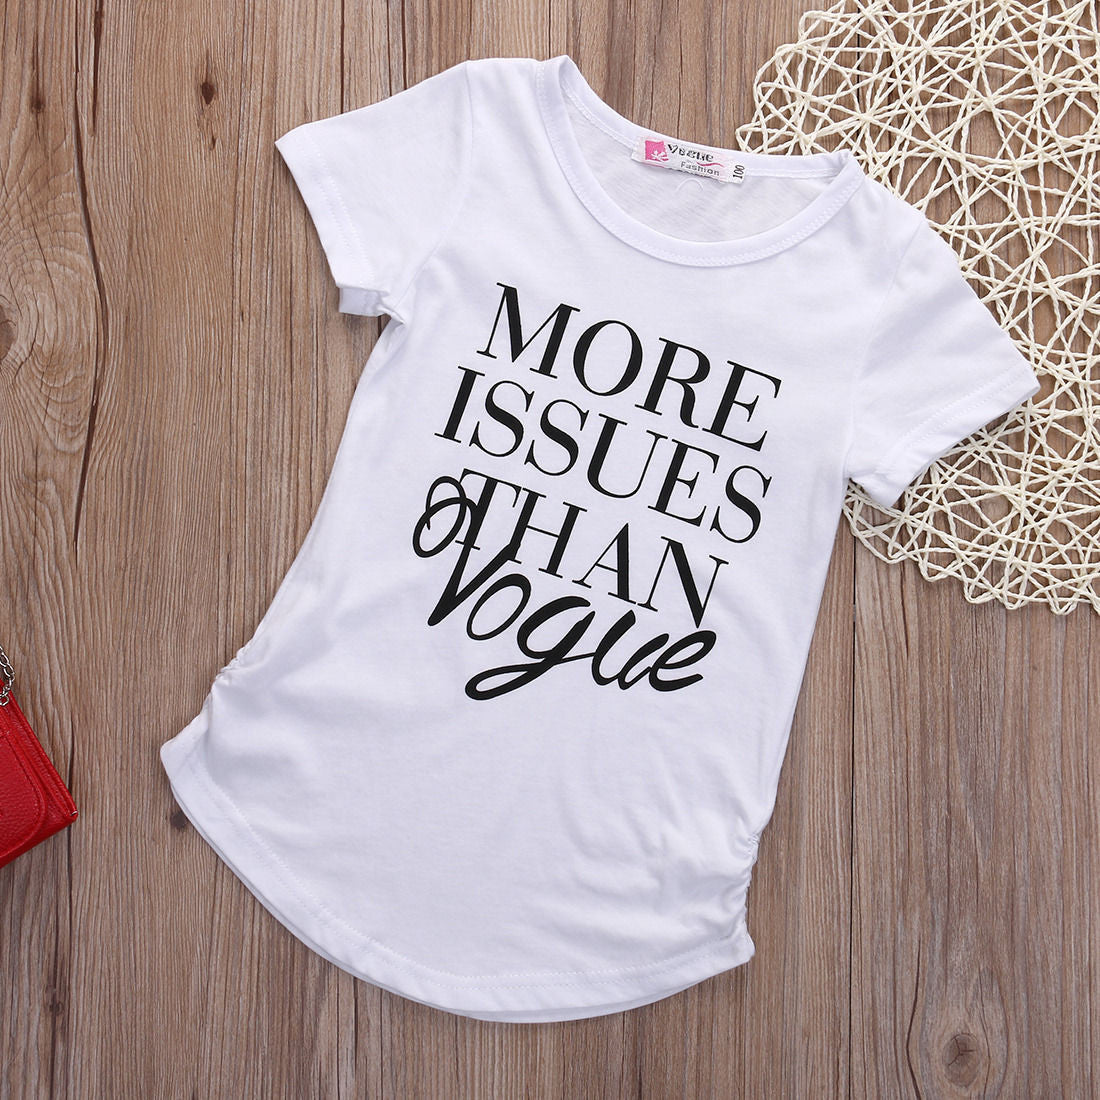 White / 5New Kids Baby Girls Summer Fashion Cotton Short sleeve T-shirt Tops Clothes